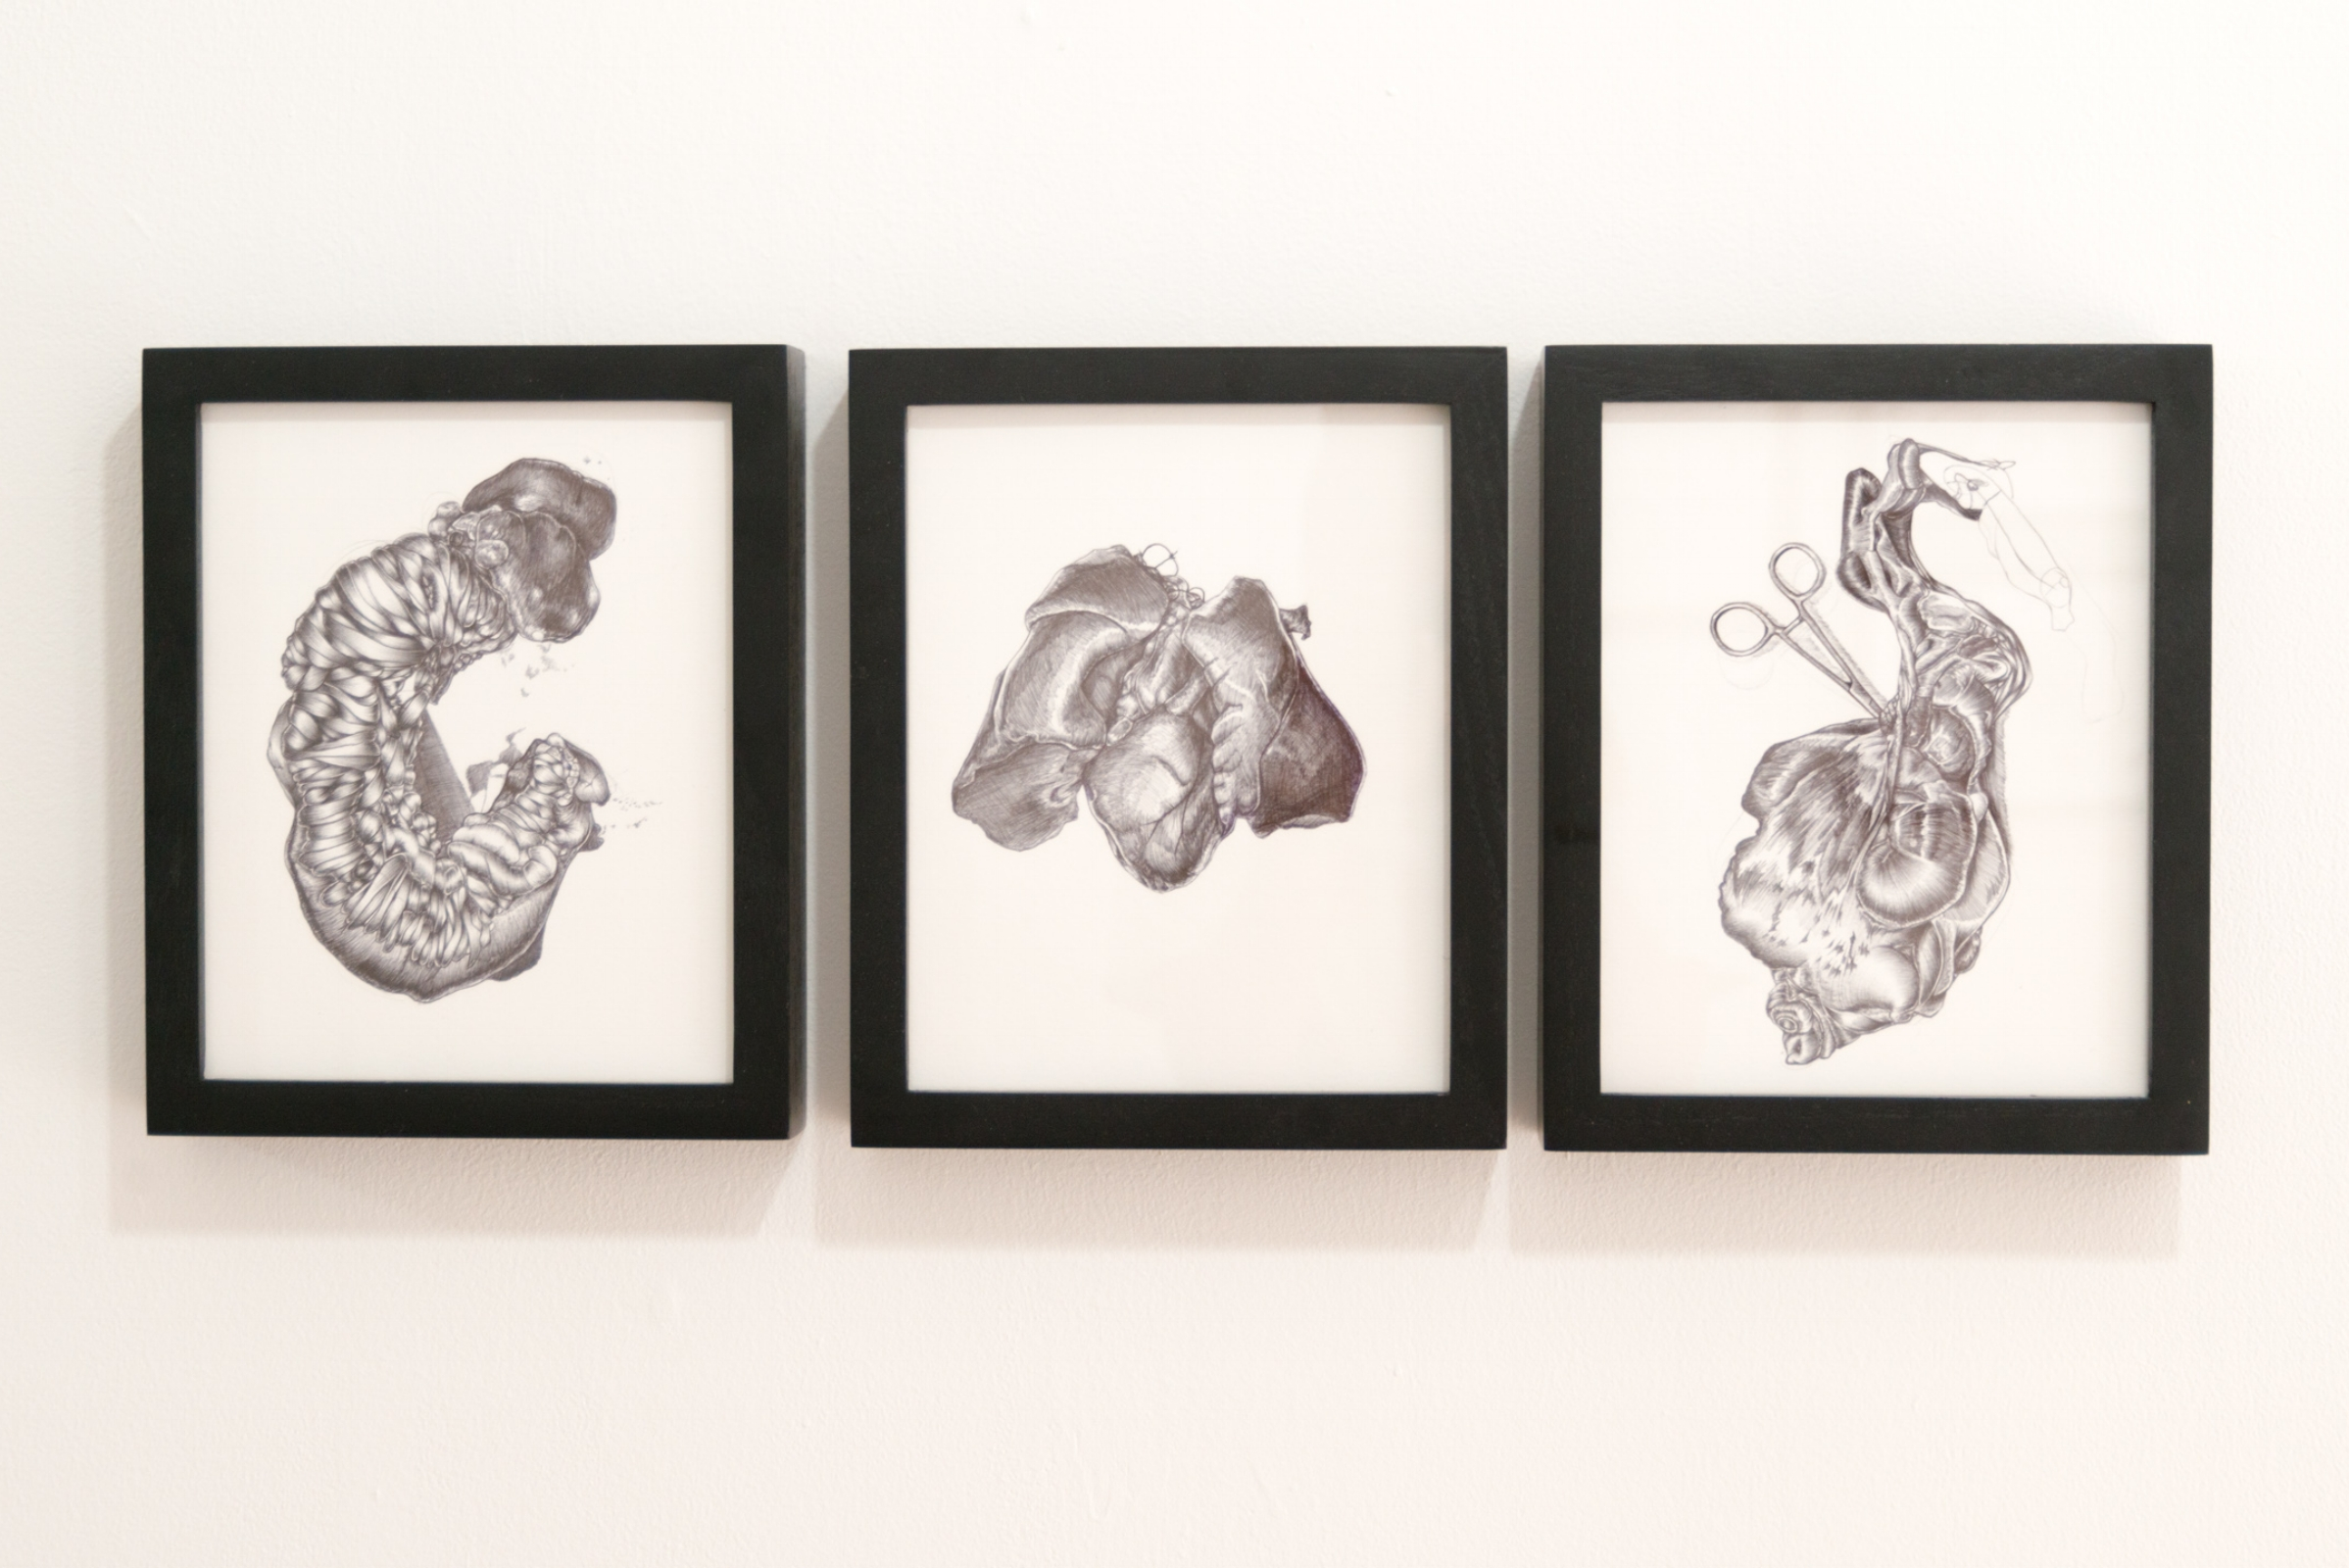 Doreen Garner,  Medical Study 7-9 , ink on paper, 5 x 8 inches each. Image courtesy of Larrie.